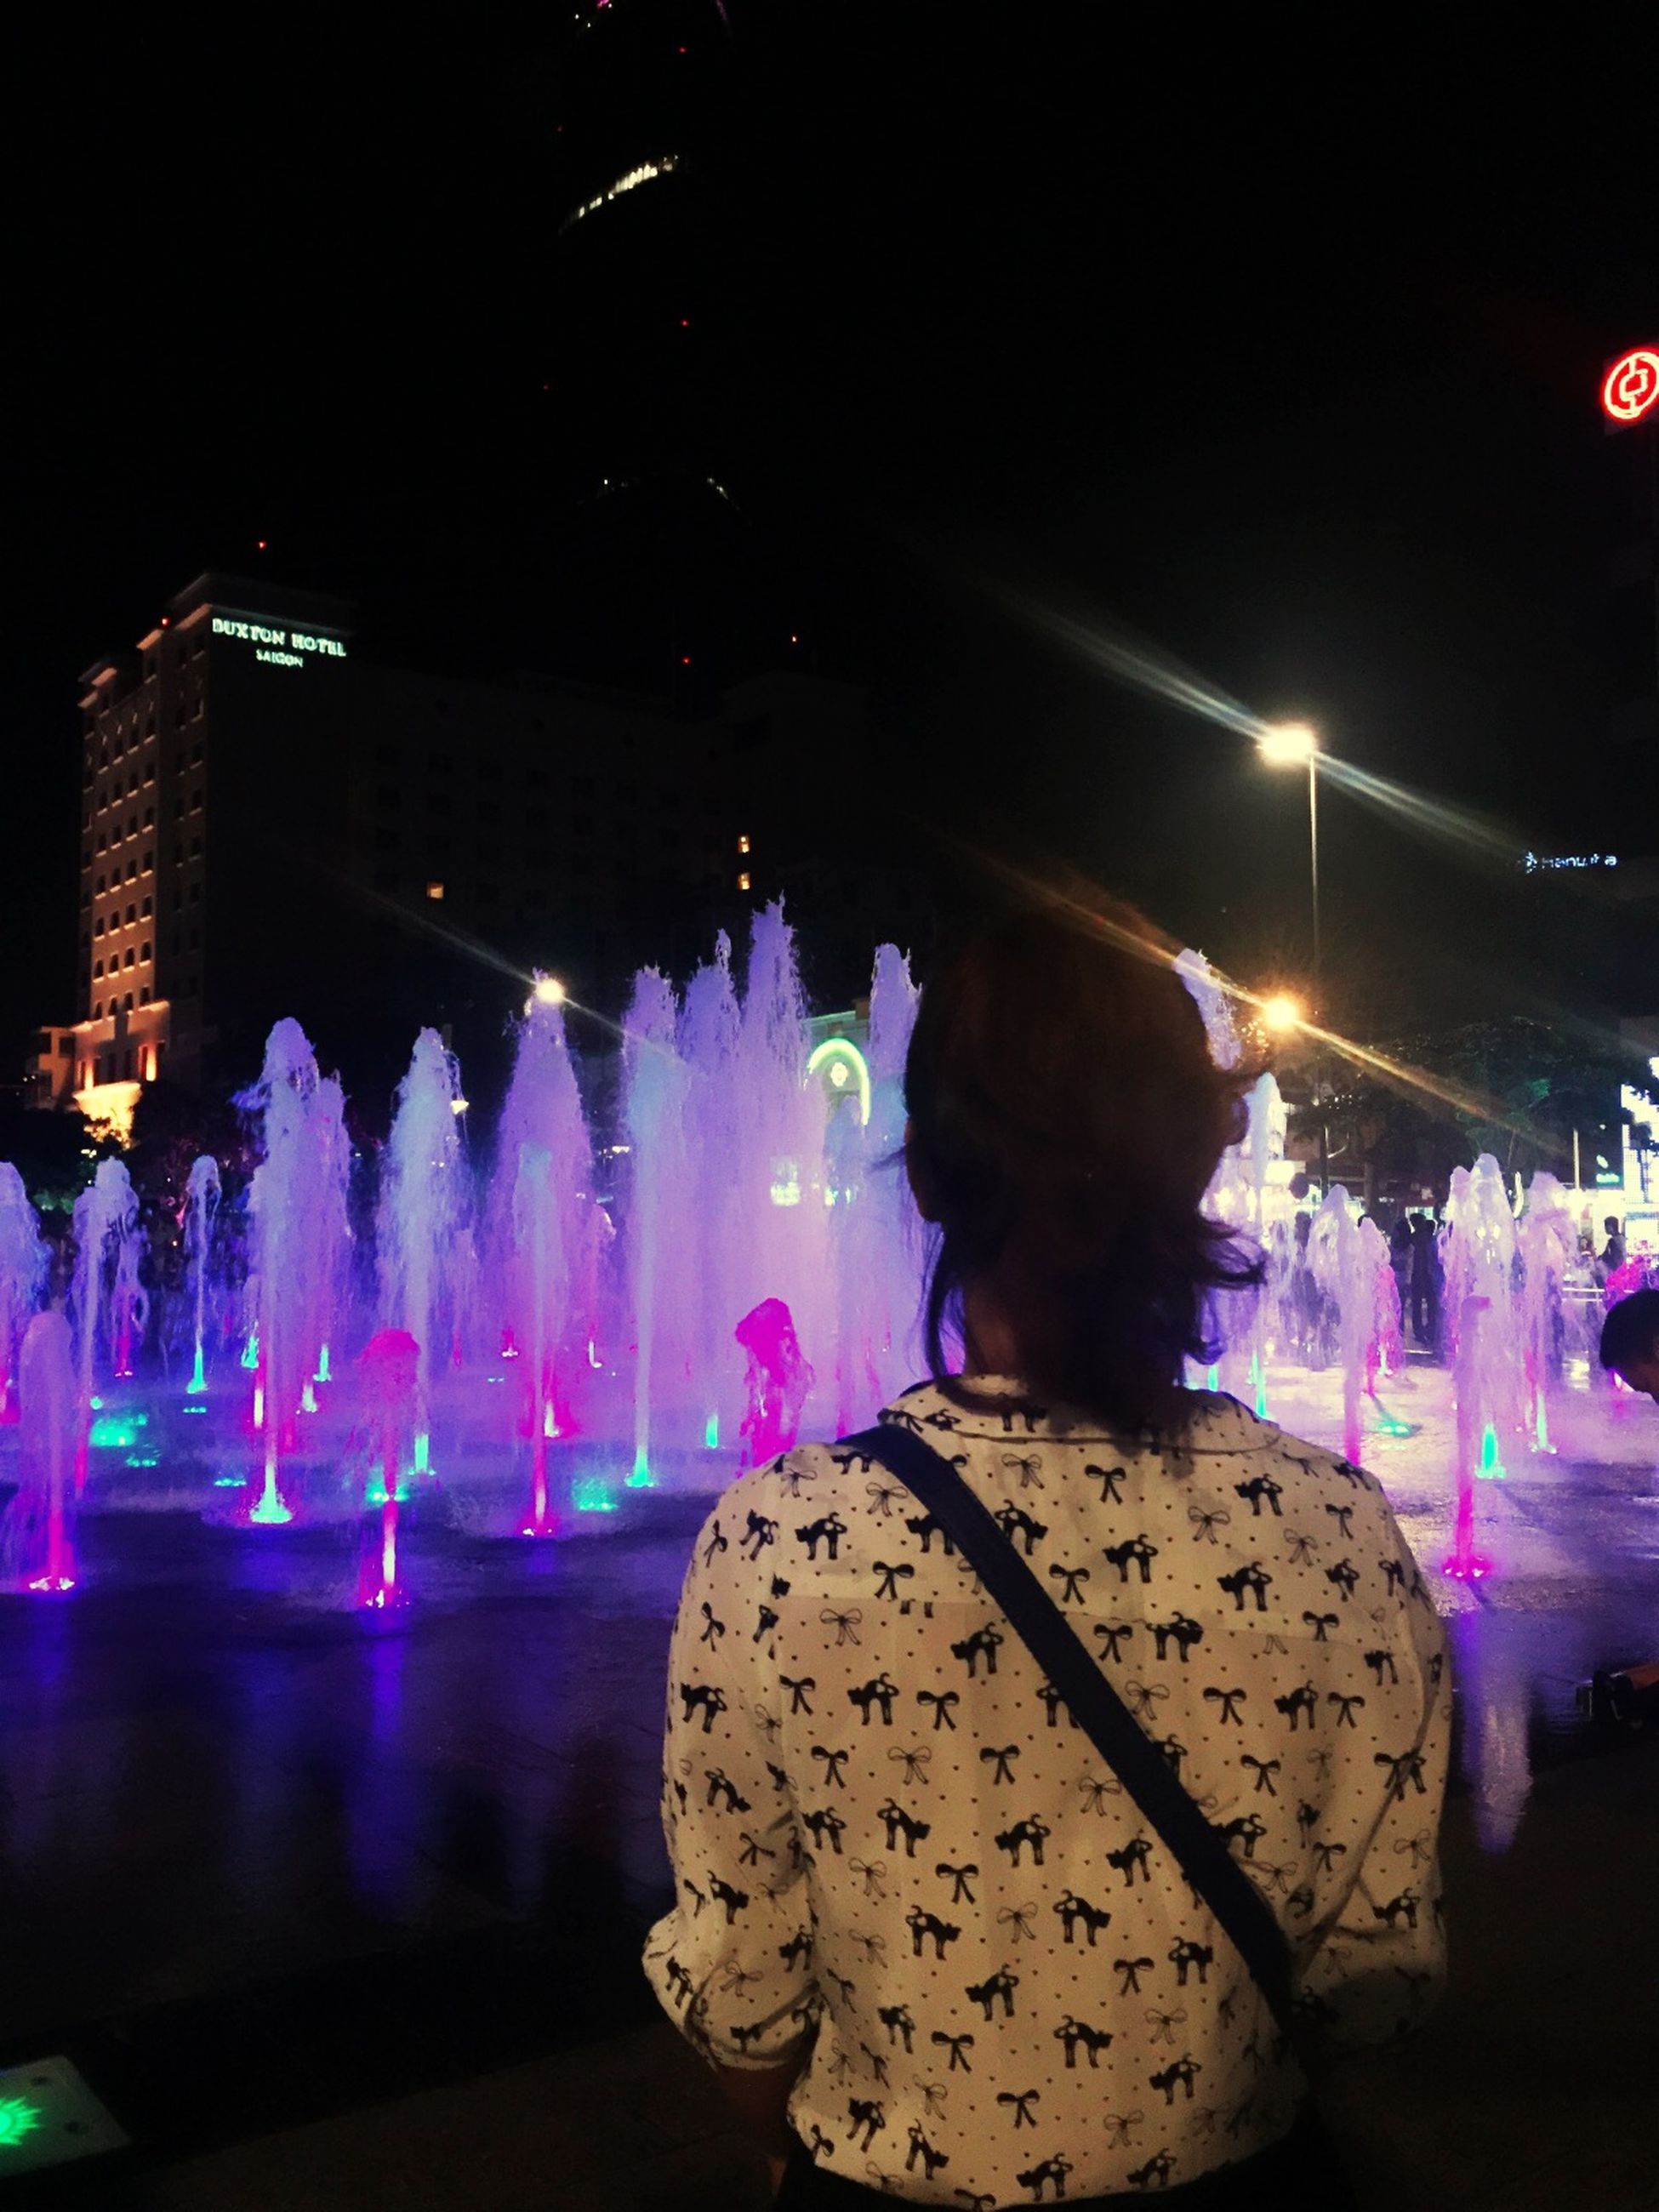 illuminated, night, celebration, long exposure, motion, lifestyles, arts culture and entertainment, leisure activity, blurred motion, enjoyment, event, fountain, light - natural phenomenon, men, performance, smoke - physical structure, glowing, person, nightlife